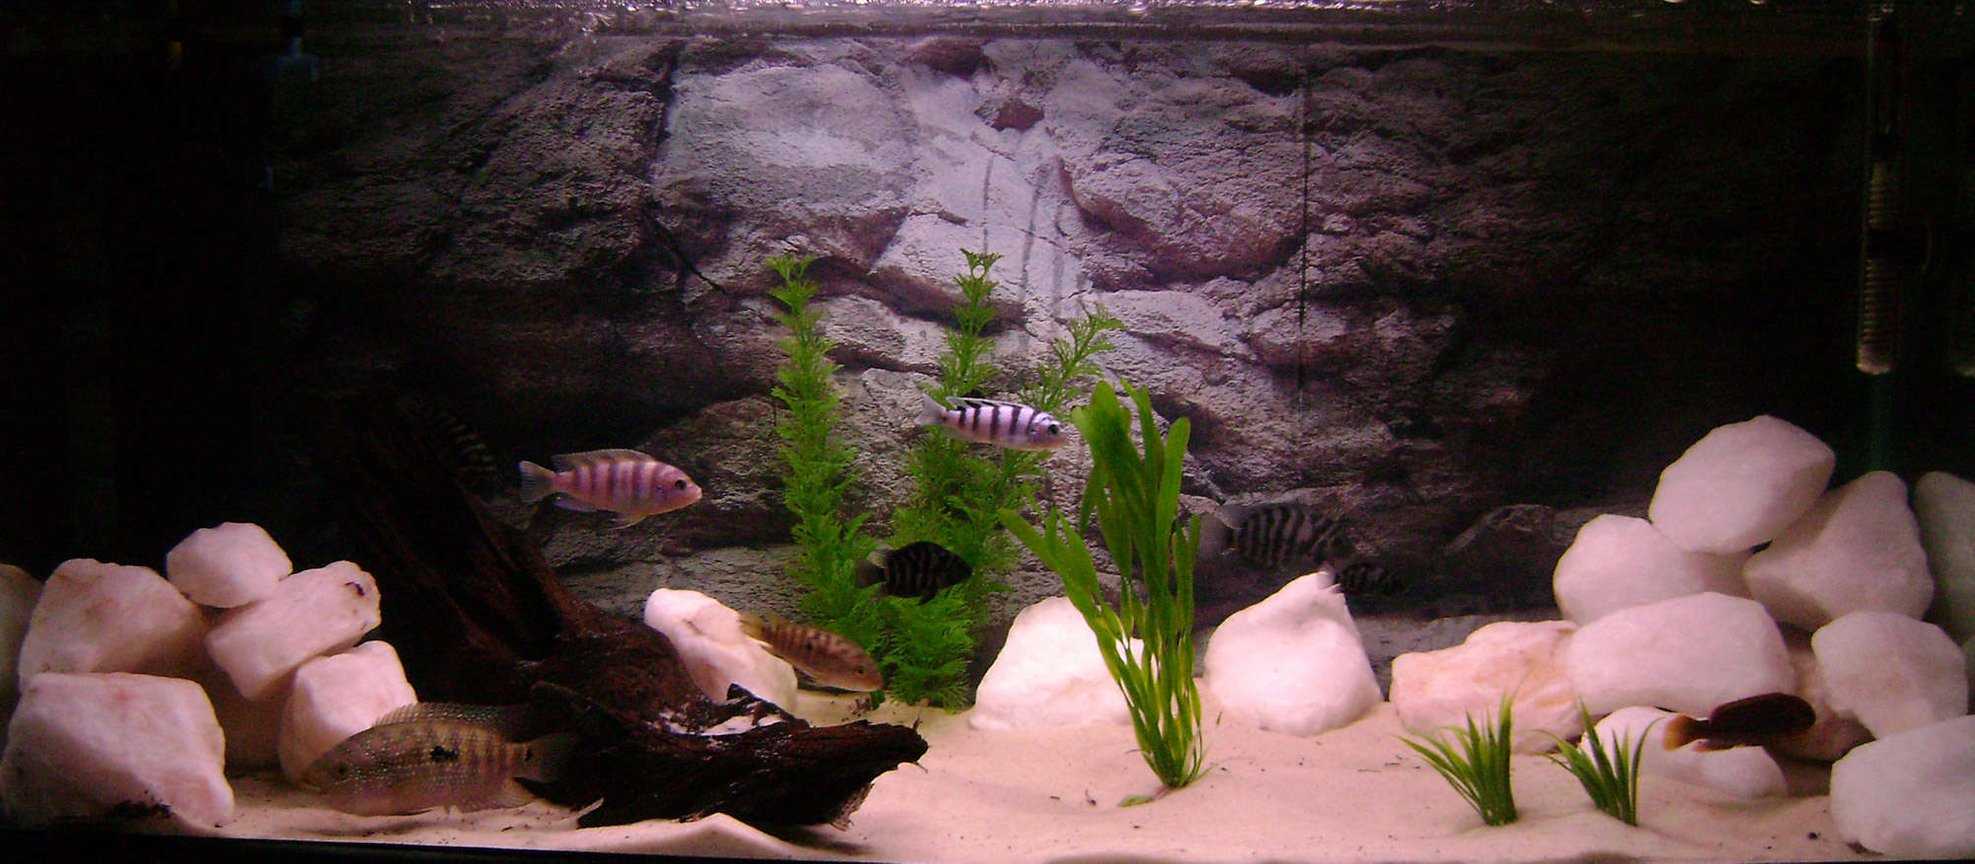 30 gallons freshwater fish tank (mostly fish and non-living decorations) - Fake Plants, Silica Sand, Quartz Rock, Malaysian Driftwood, Variety of Fish